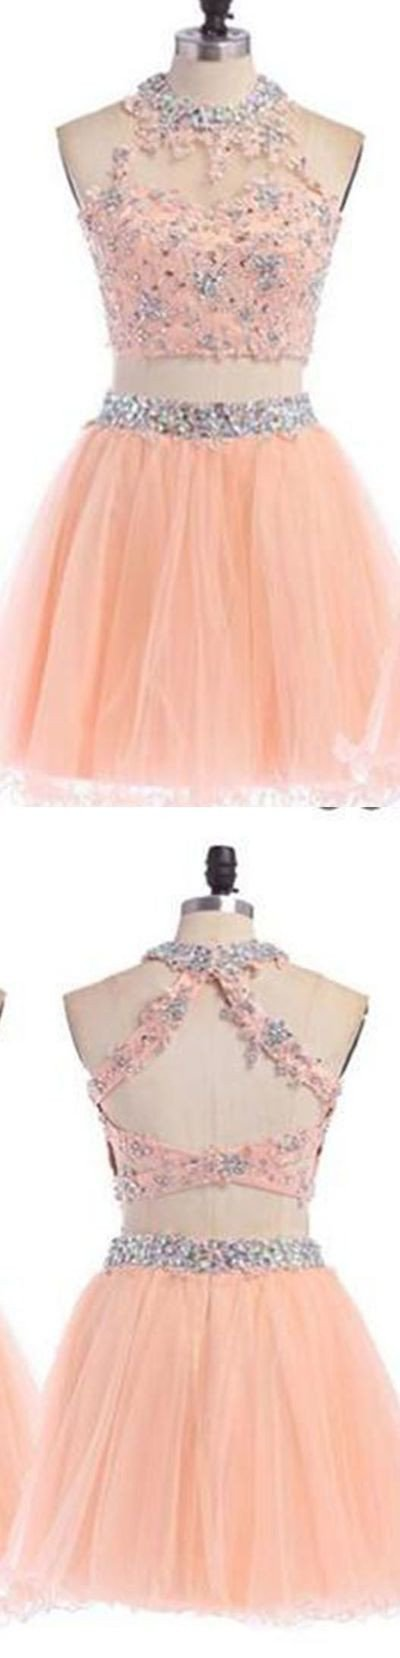 2016 Sexy Two pieces Peach lace homecoming prom dresses, CM0004